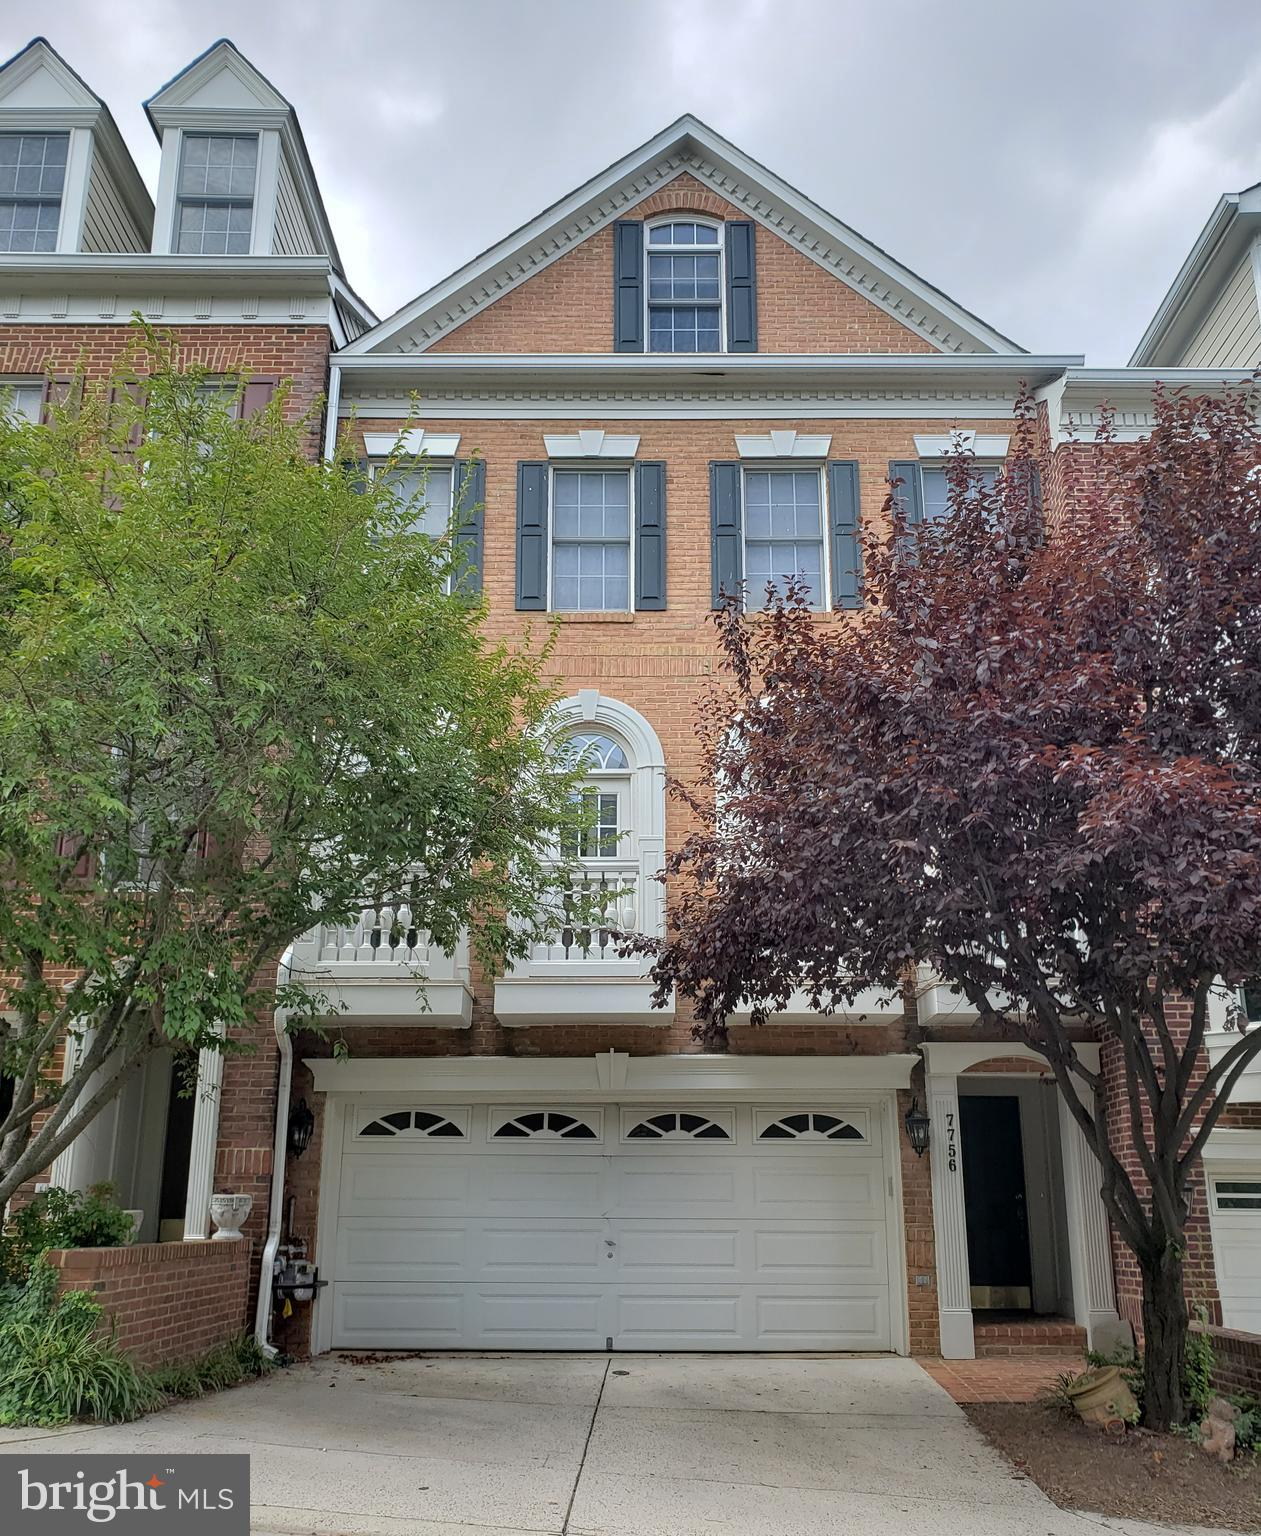 HUGE PRICE IMPROVEMENT!!! DON'T MISS OUT ON THIS FABULOUS DEAL! Subject to third party approval! Needs some work! Stunning Luxury all brick townhome in exclusive gated community, in the heart of McLean! This gorgeous home boasts 9' ceilings, dramatic circular staircase, Princess balconies, backyard patio, hardwood floors in basement, family room, dining room, and living room. Gourmet kitchen with top line appliances, 2 story Master suite with luxurious spa bath and sitting area. Close to 495, Tysons, 66 and Toll Road. A Commuter's Dream!